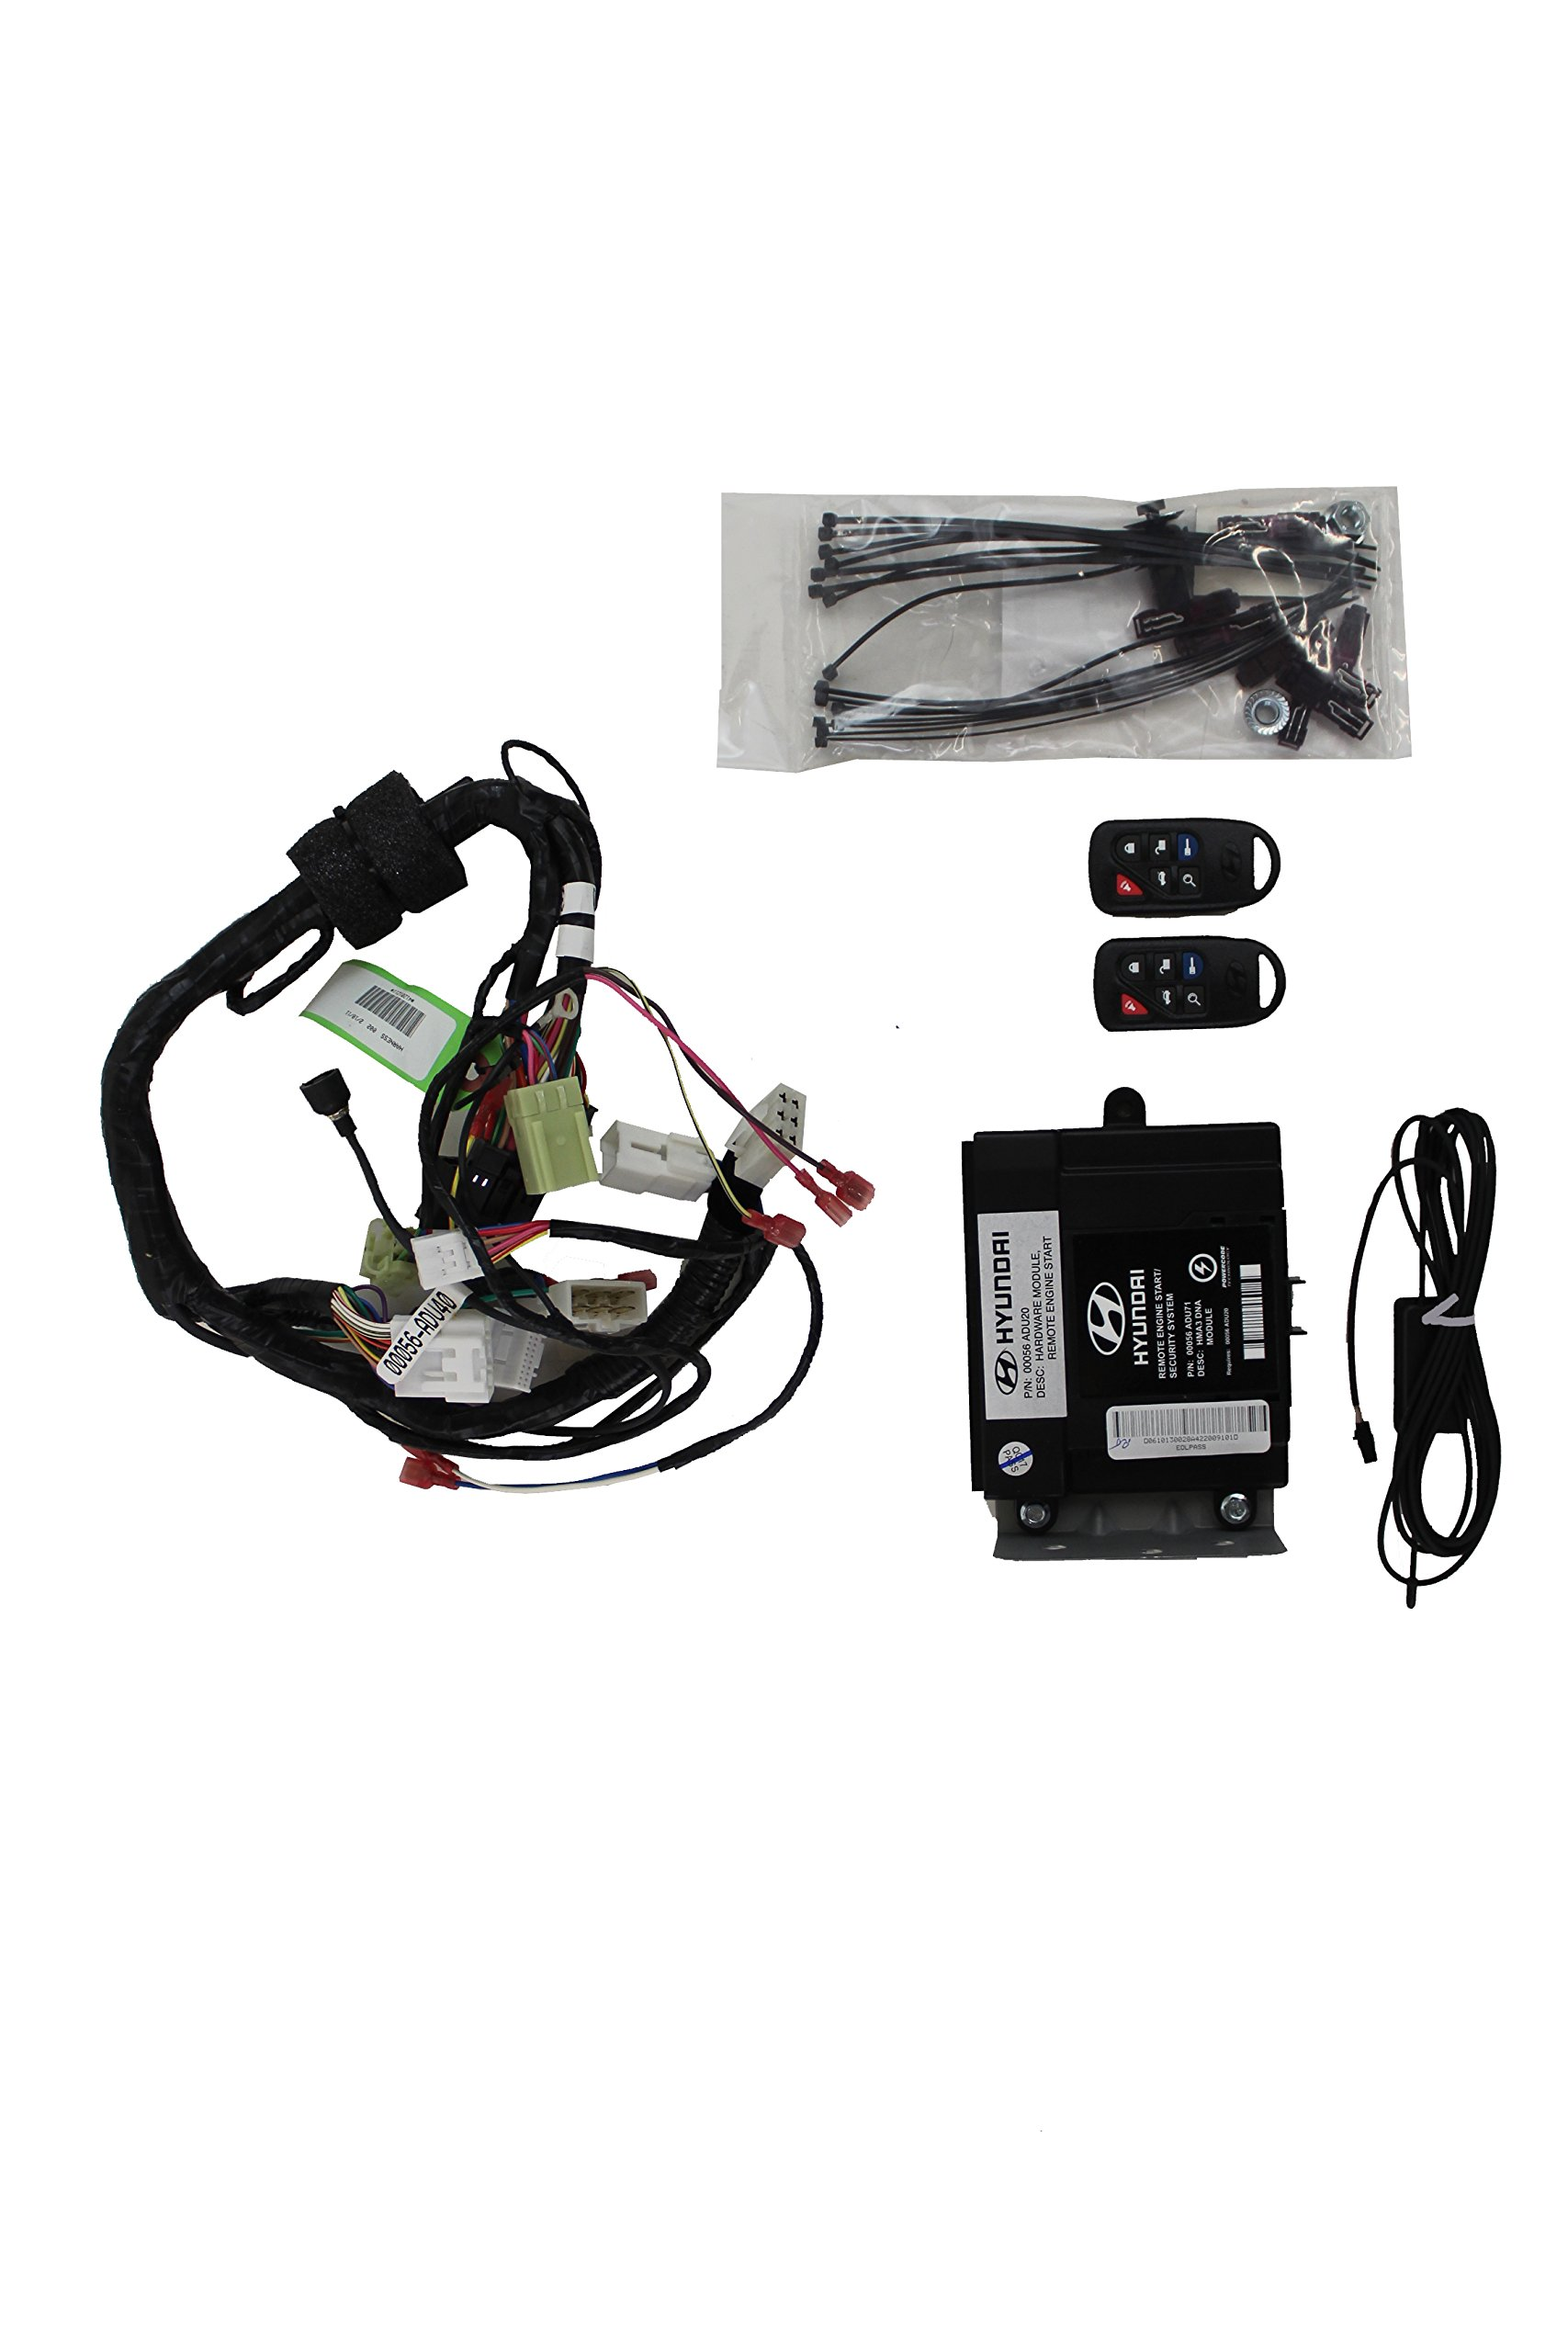 Genuine Hyundai 3S056-ADU02 Remote Start